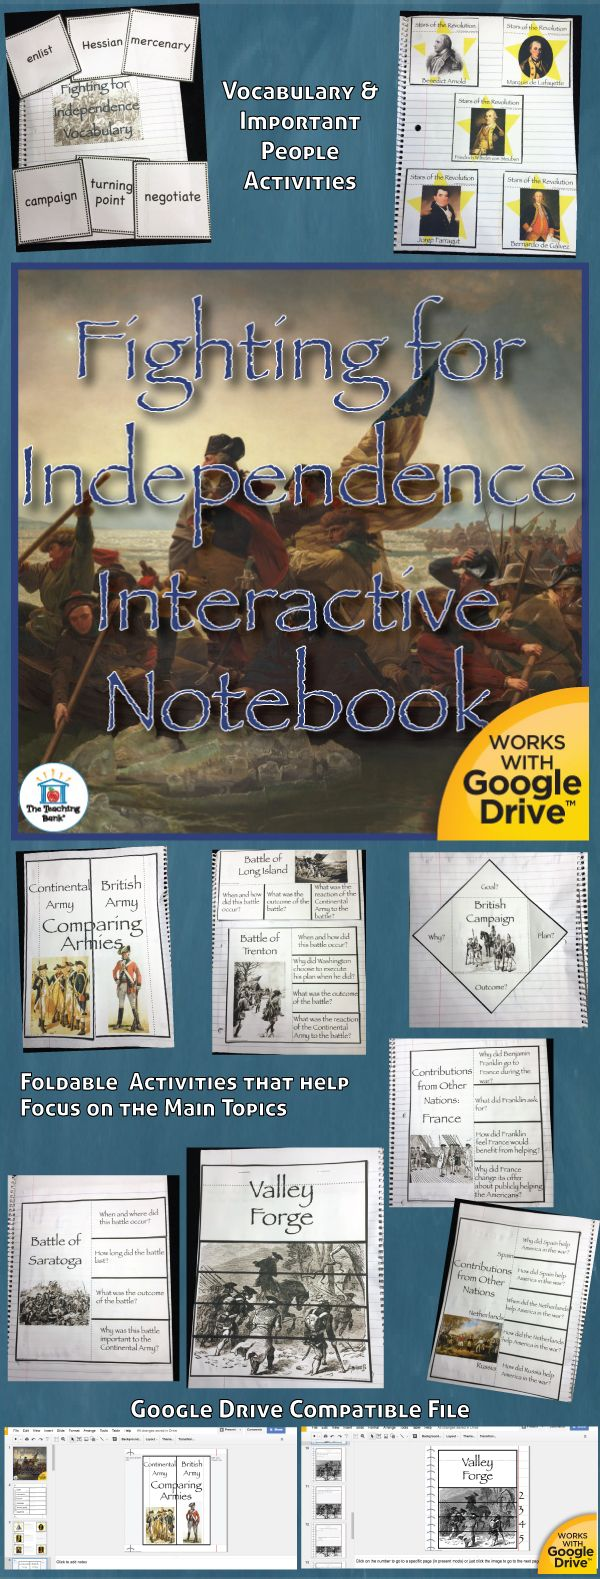 Fighting for Independence Interactive Notebook, which works for both print and Google Drive™, investigates and helps gain understanding of of several important battles of the Revolutionary War and how Americans handled the hardships with some help from other nations. Geared as a unit in the 5th grade study of United States History.